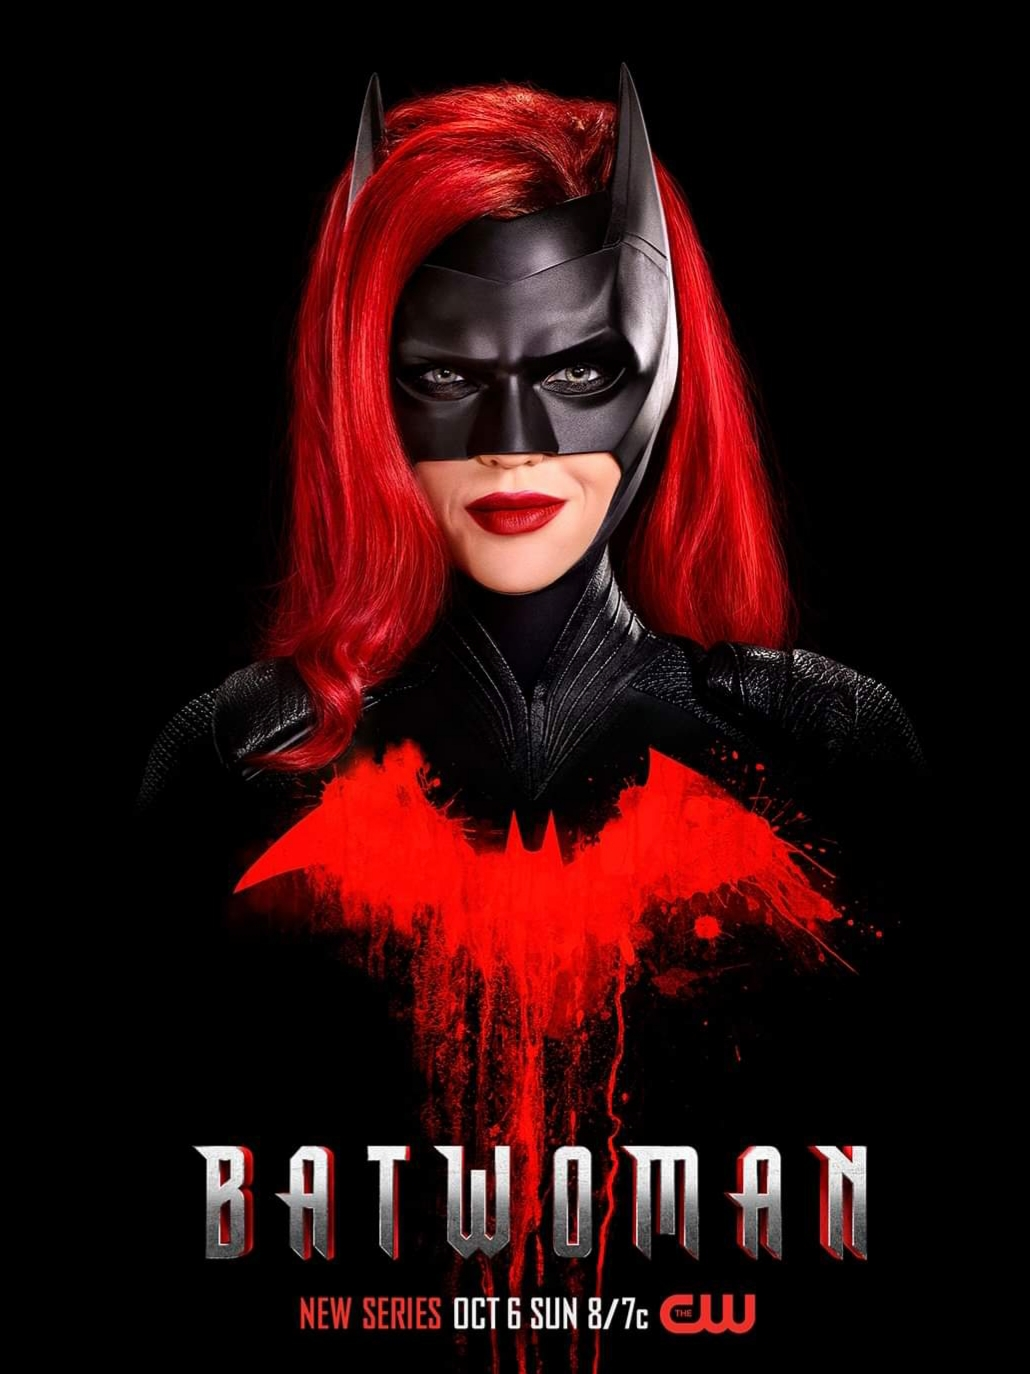 Batwoman (TV Series 2019– ) - IMDb